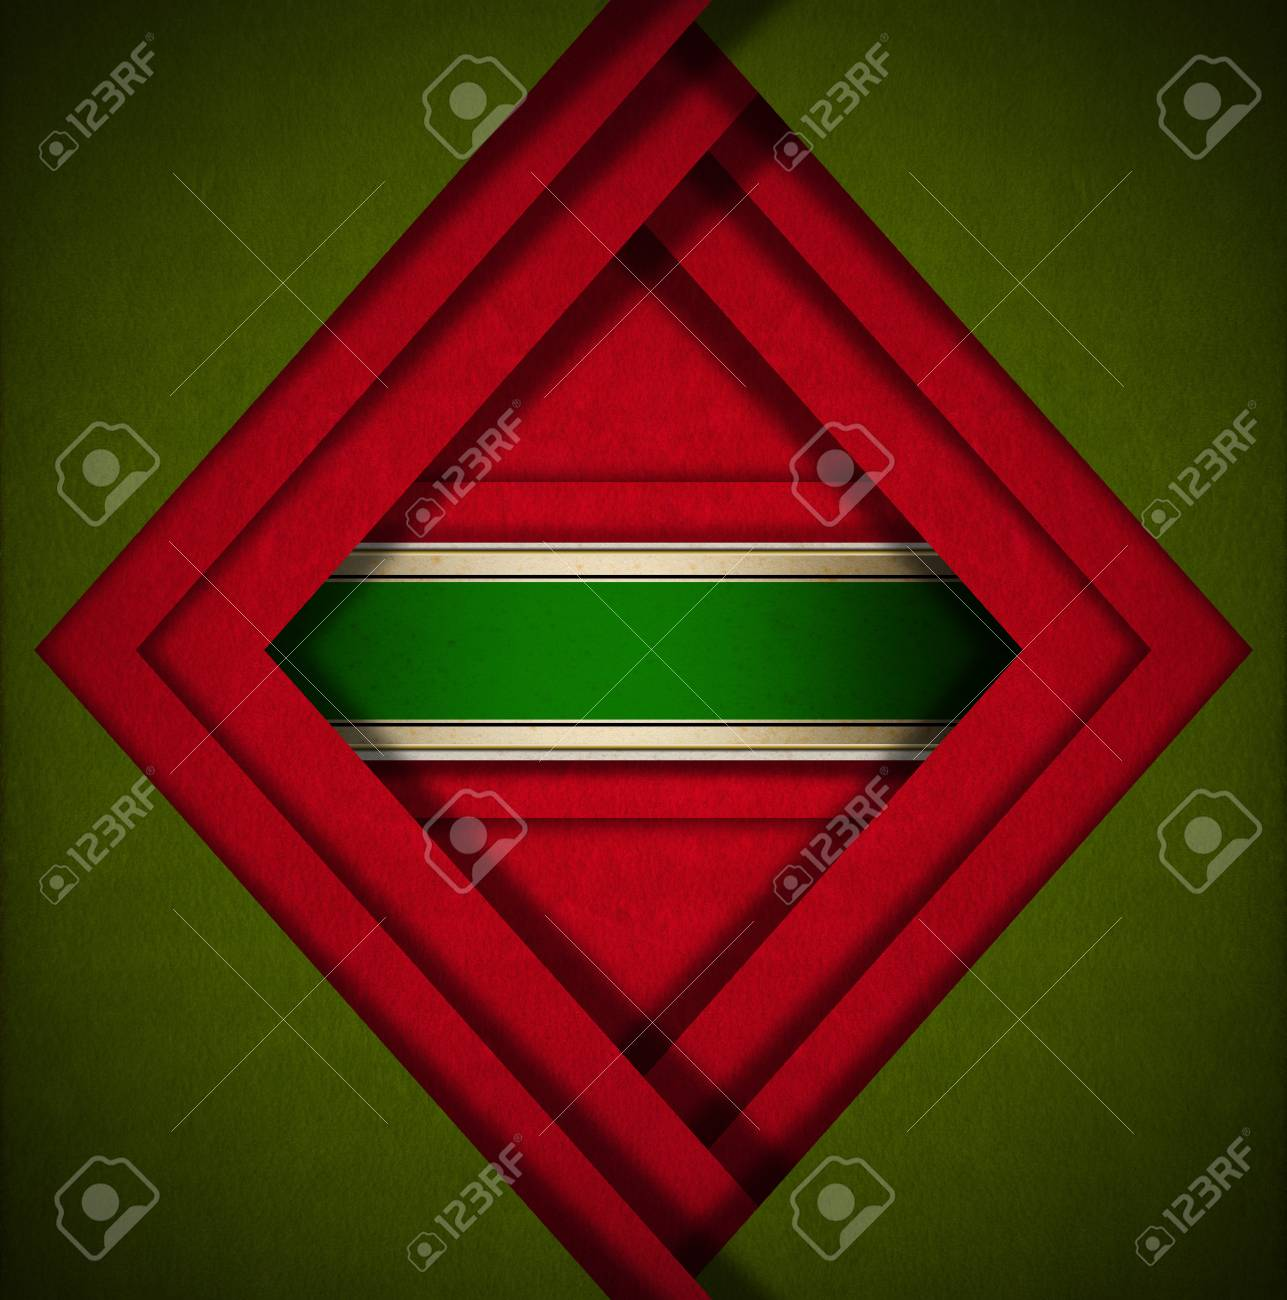 Red and green velvet background with geometric forms and green plaque Stock Photo - 24039918